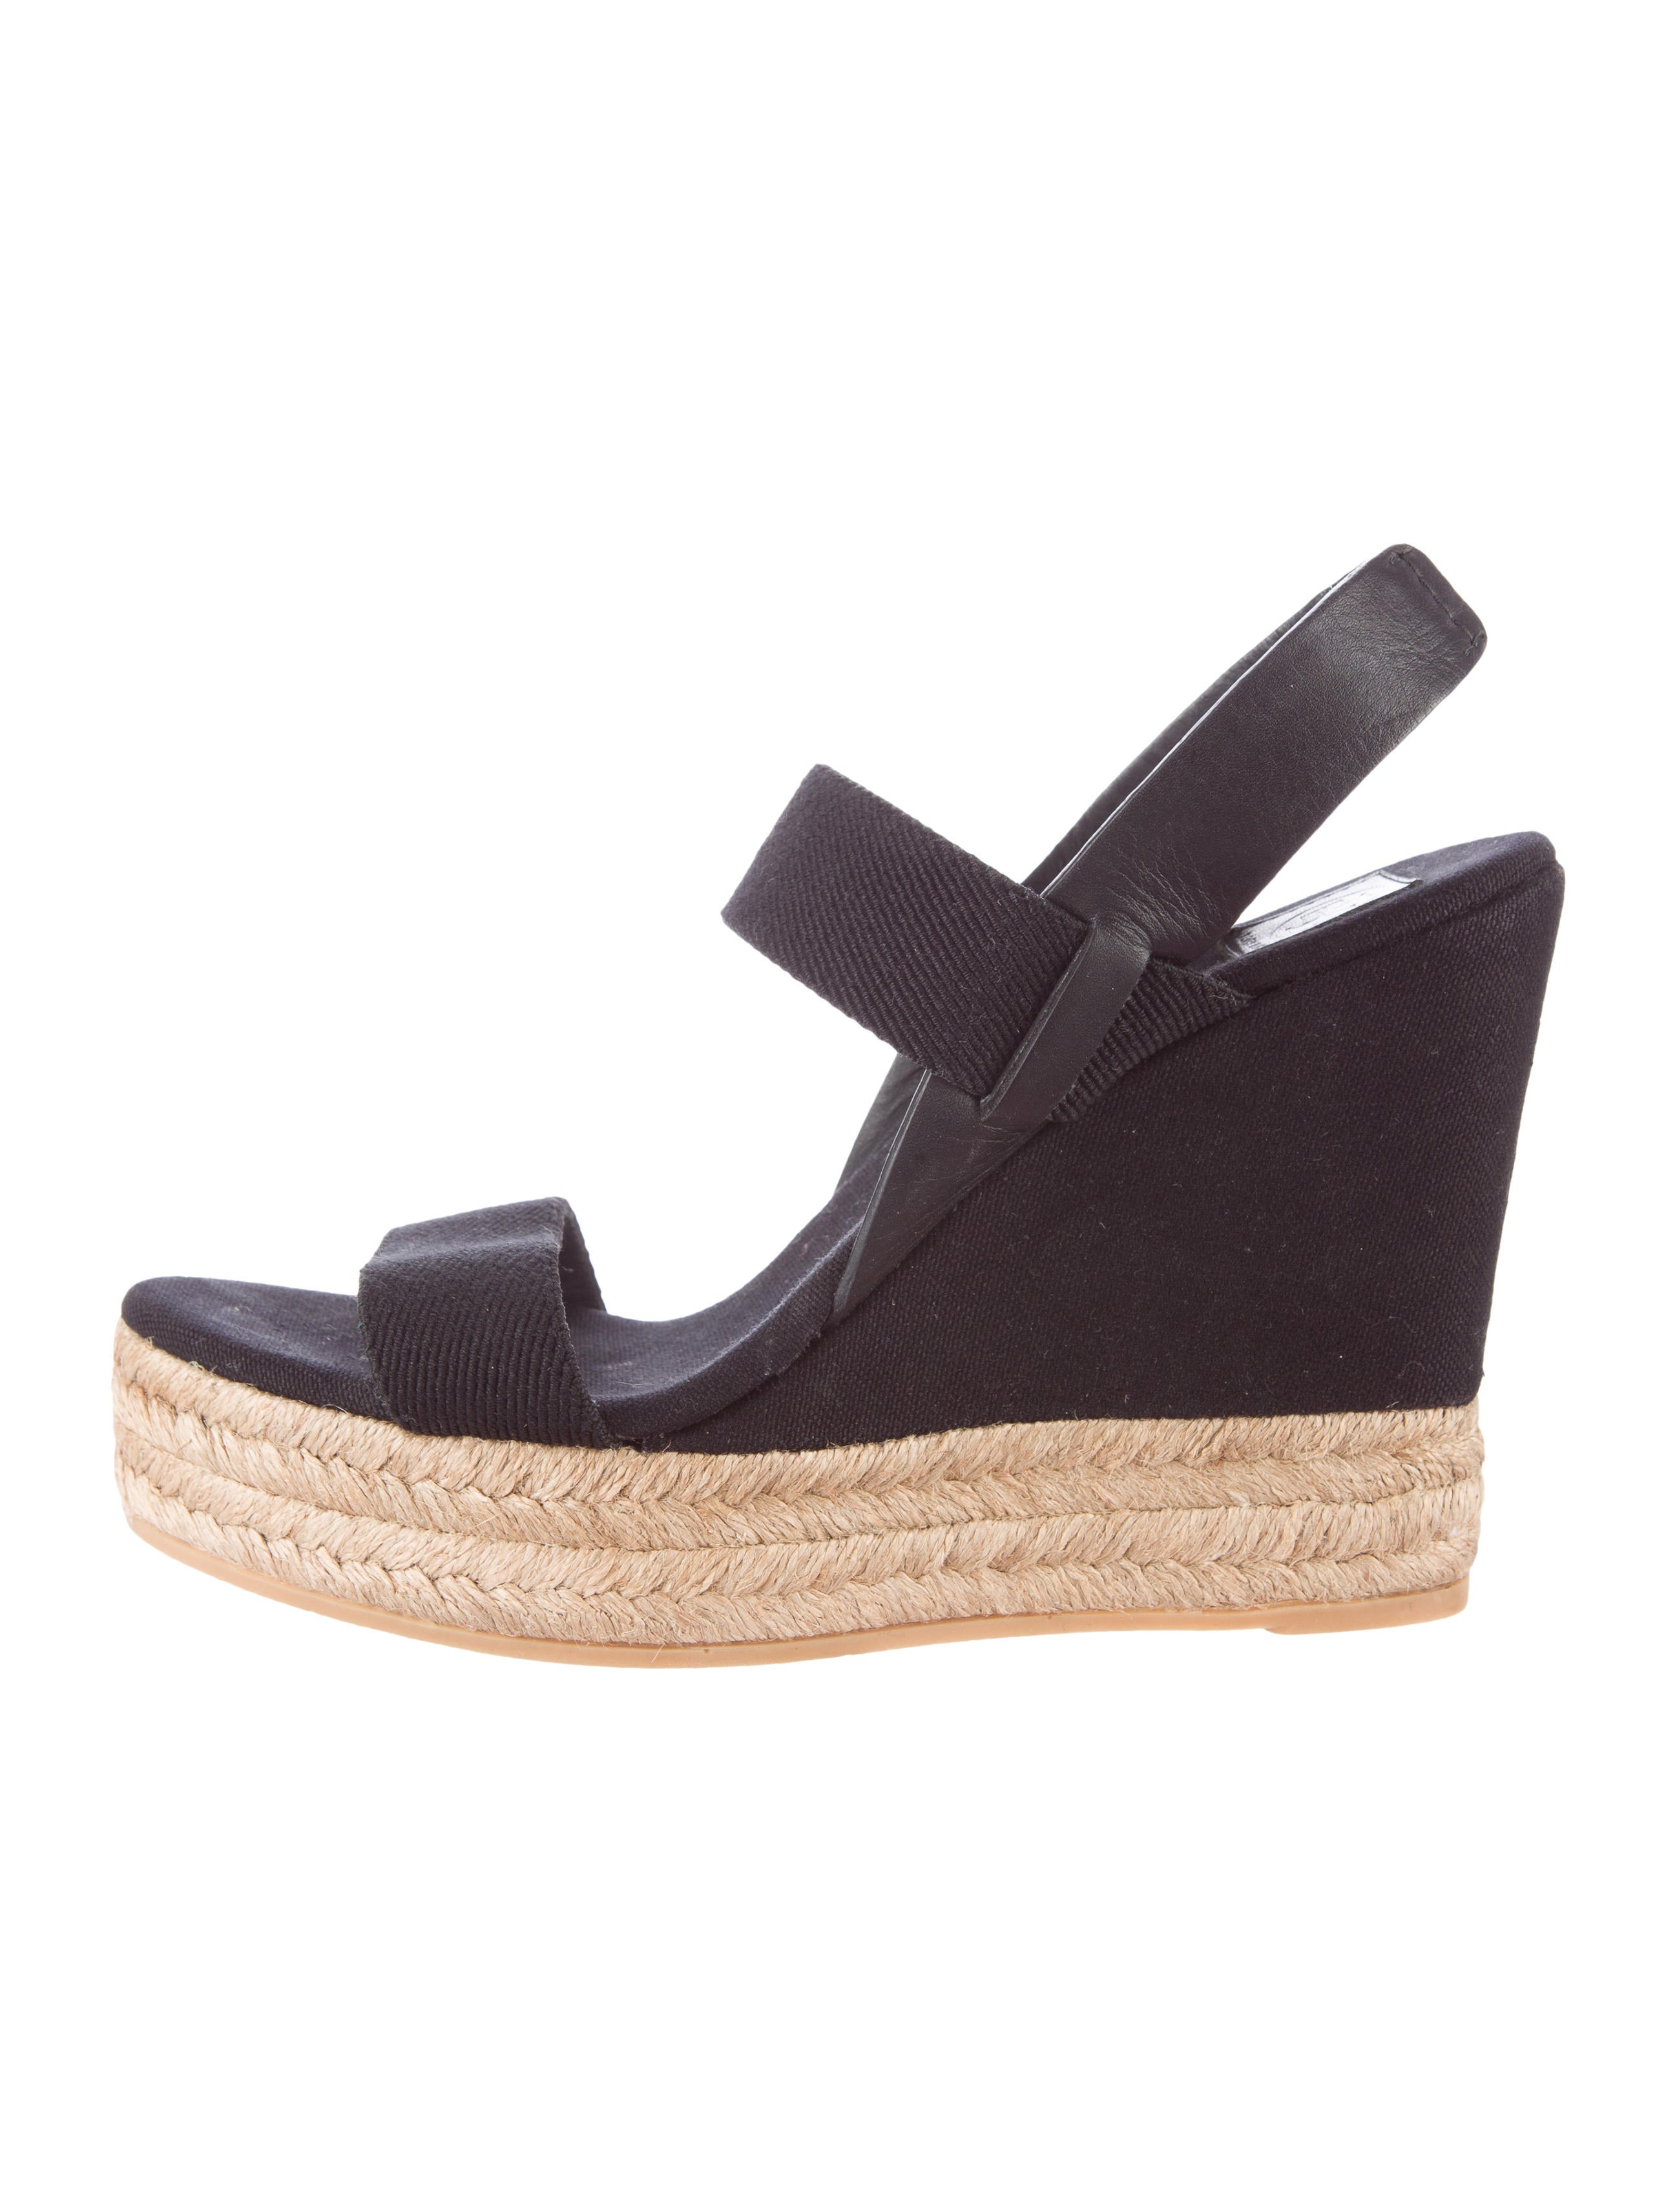 burch canvas espadrille wedges shoes wto59084